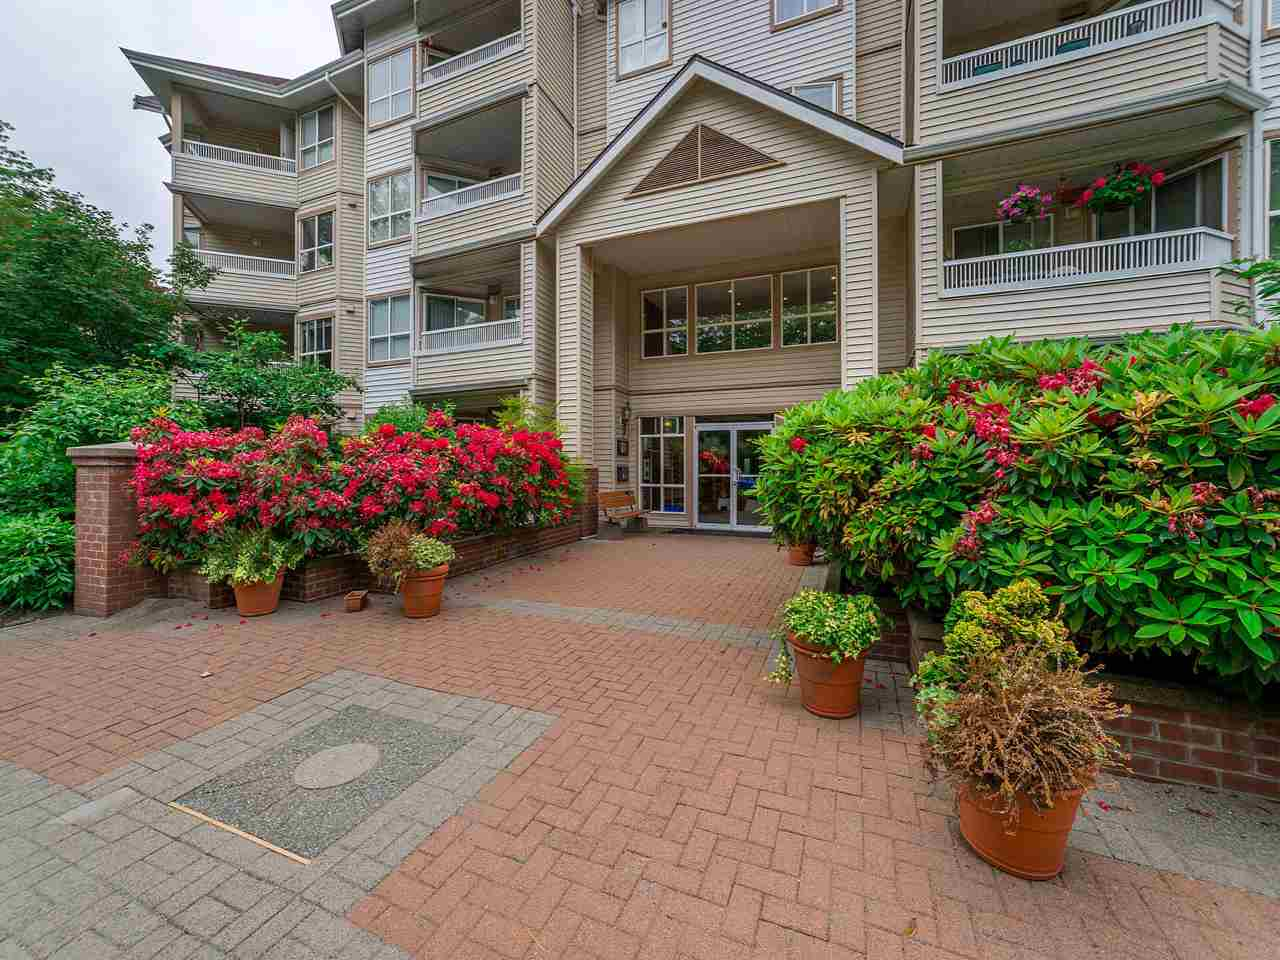 "Main Photo: 301 8139 121A Street in Surrey: Queen Mary Park Surrey Condo for sale in ""THE BIRCHES"" : MLS®# R2278886"